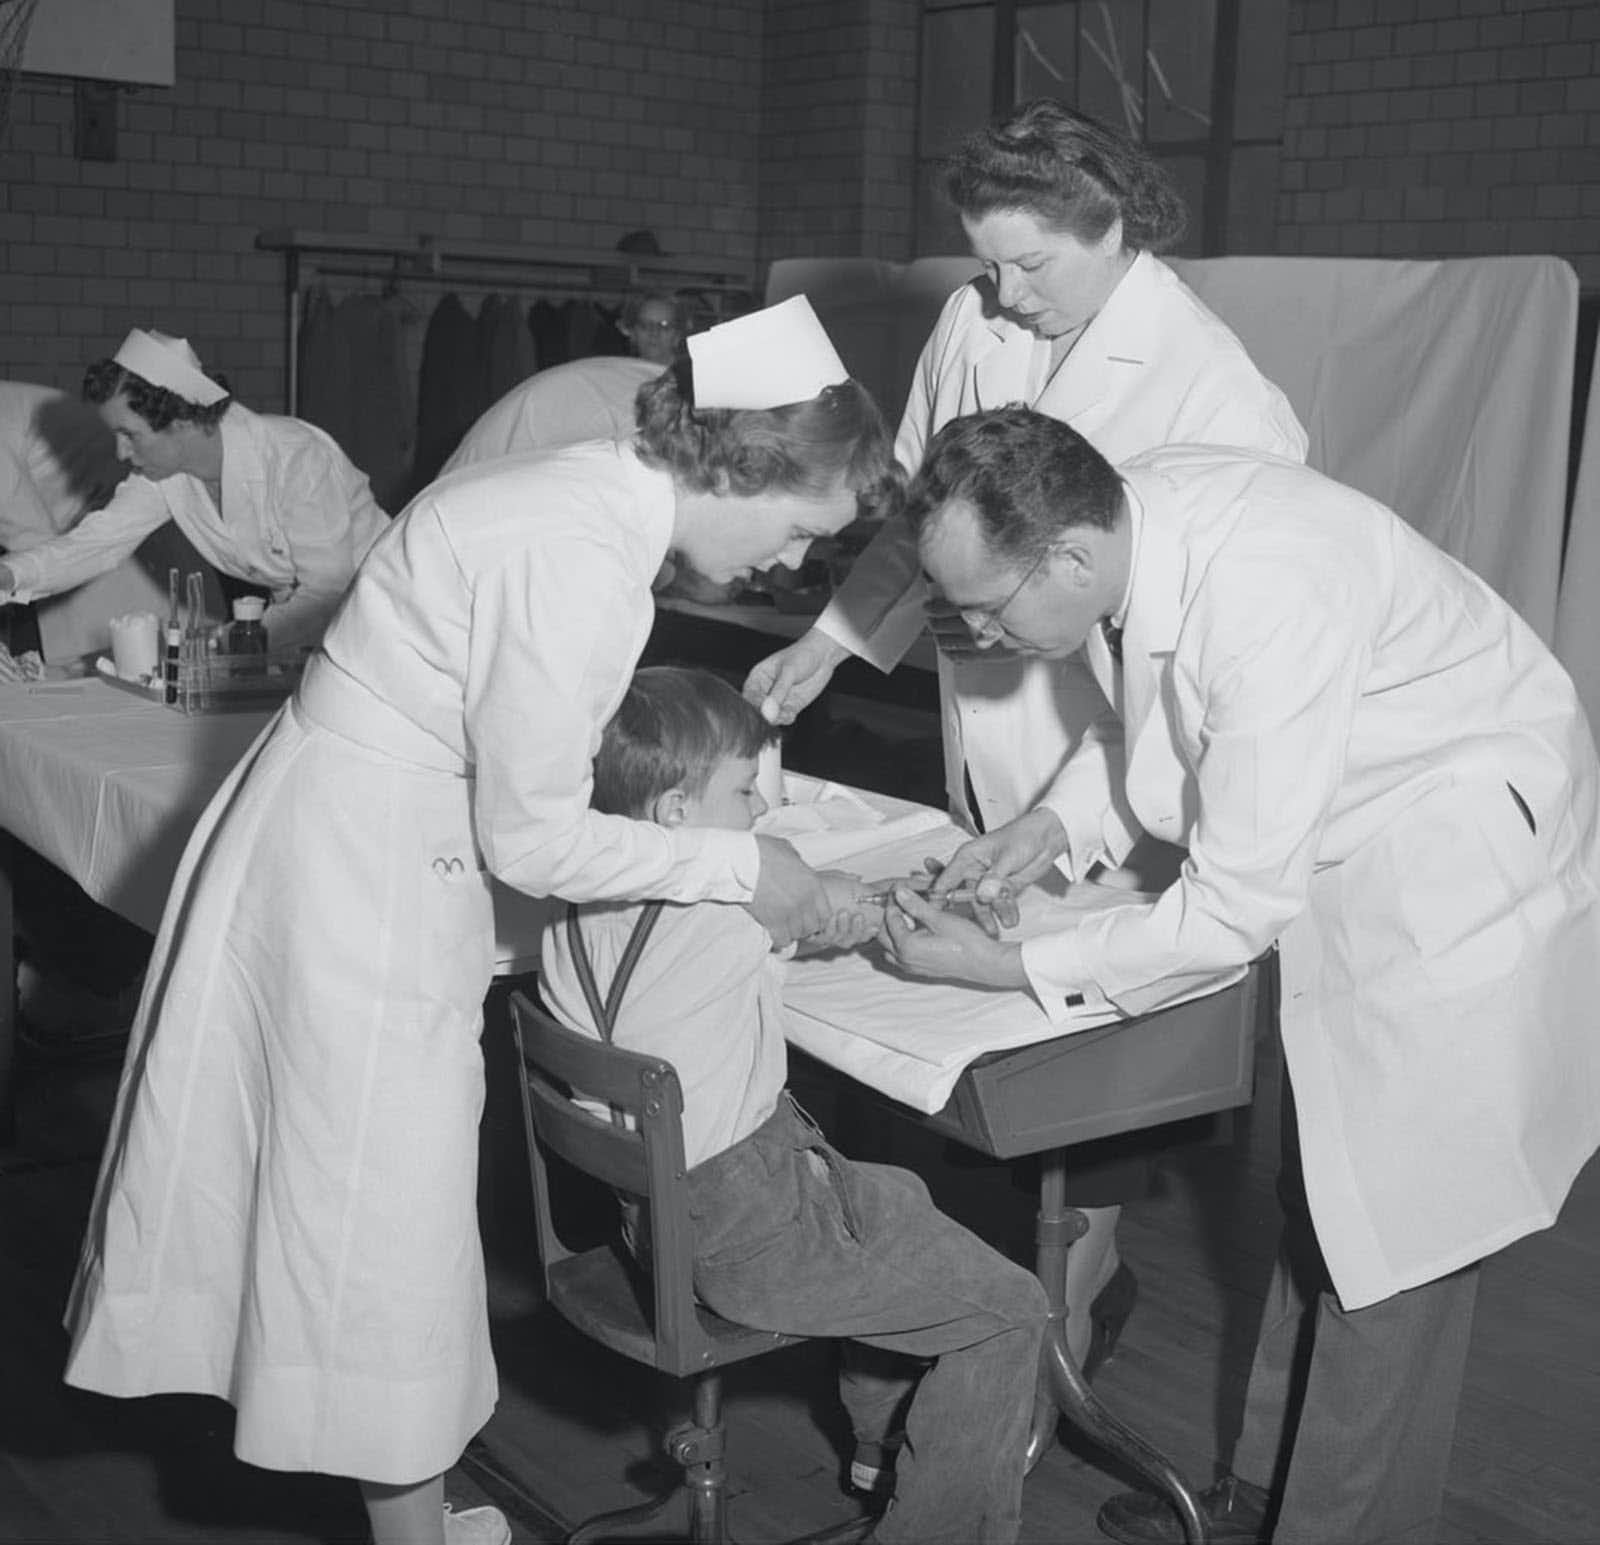 <p>Dr. Jonas Salk (right), the scientist who developed the first polio vaccine, administers an injection to a boy in Pittsburgh. The Salk vaccine came into use in 1955. The oral vaccine was developed by Dr. Albert Sabin and was used on the public starting in 1961. (File Photo/The Associated Press)</p>